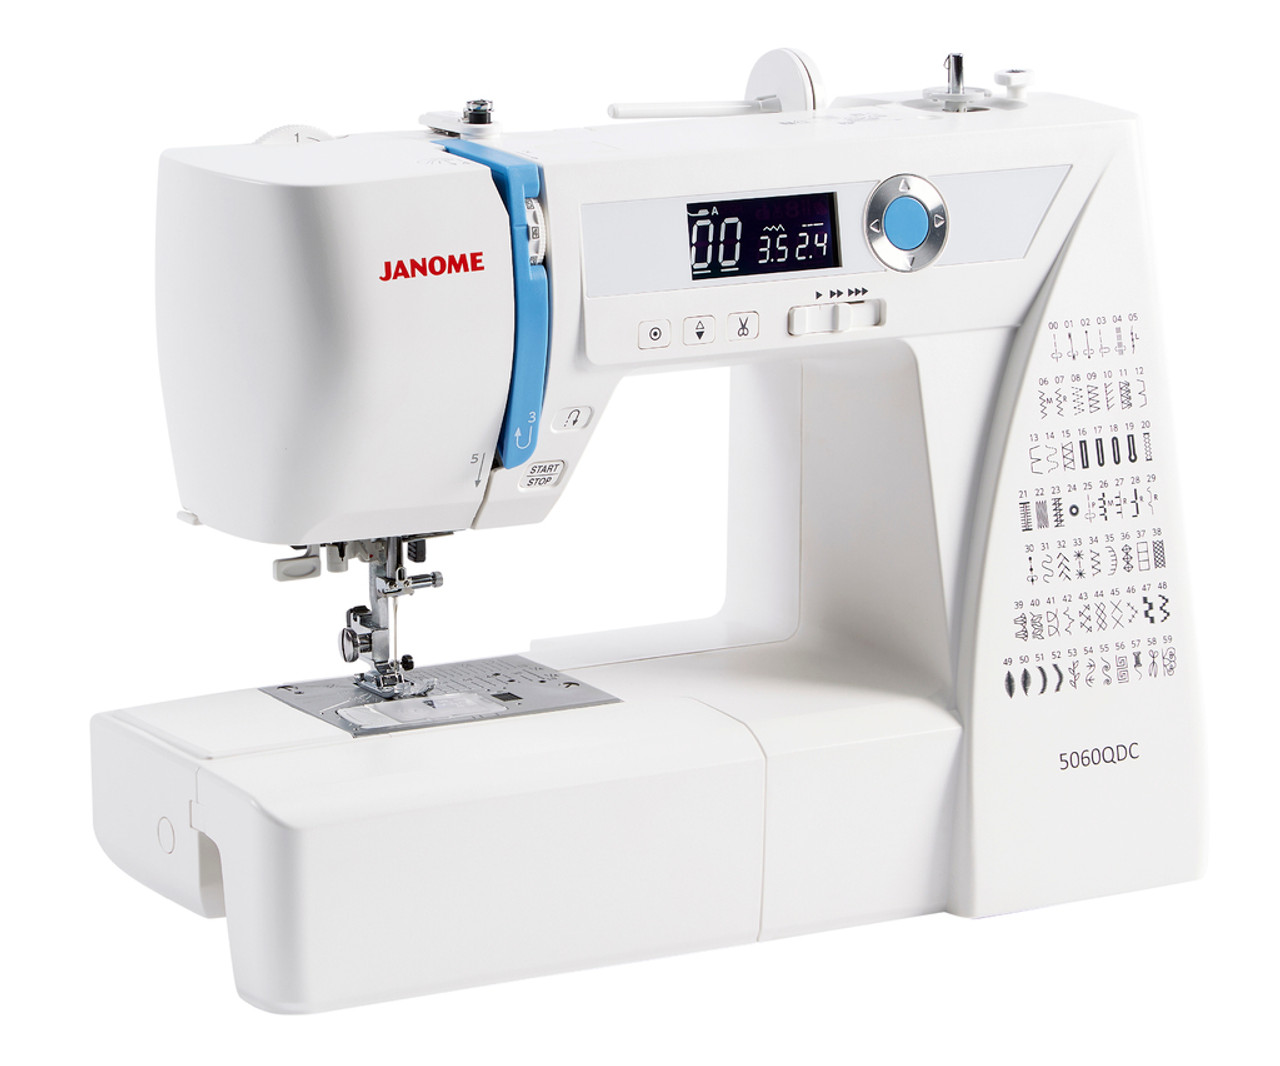 Machine couture Janome 780DC - Pénélope sewing machines | 1066x1280